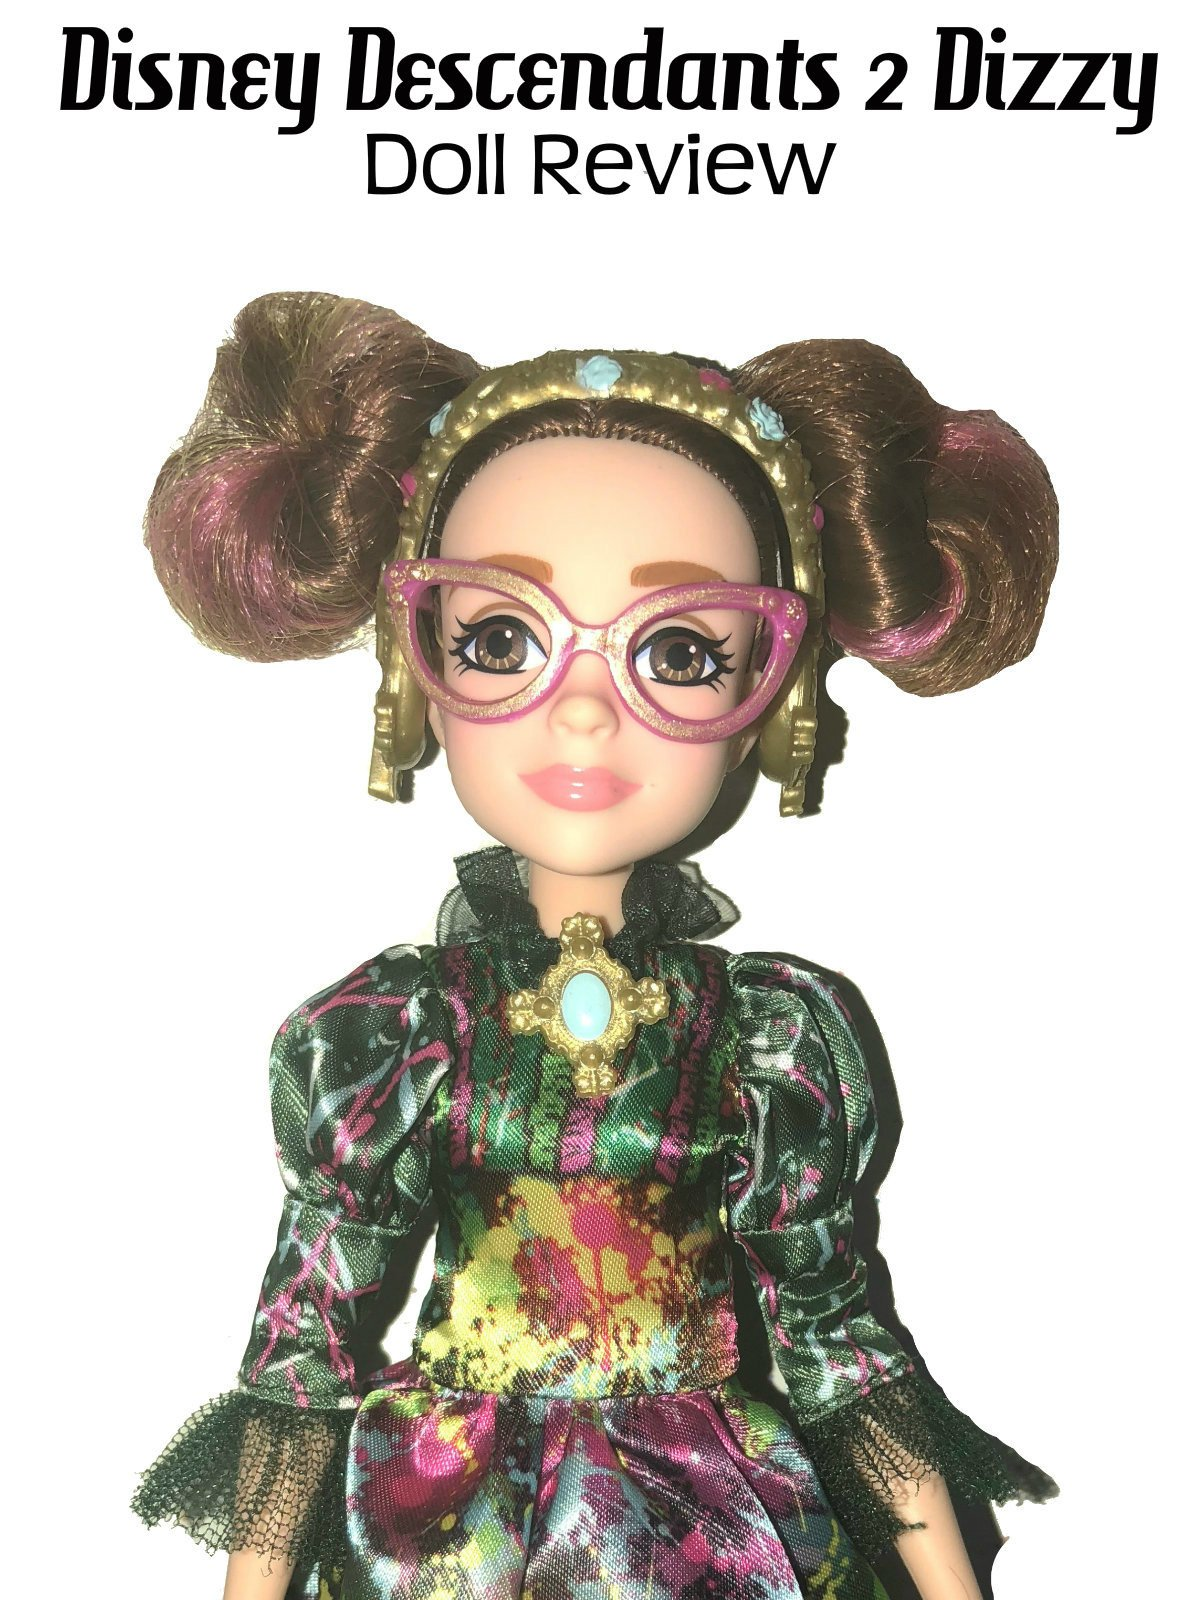 Review: Disney Descendants 2 Dizzy Doll Review